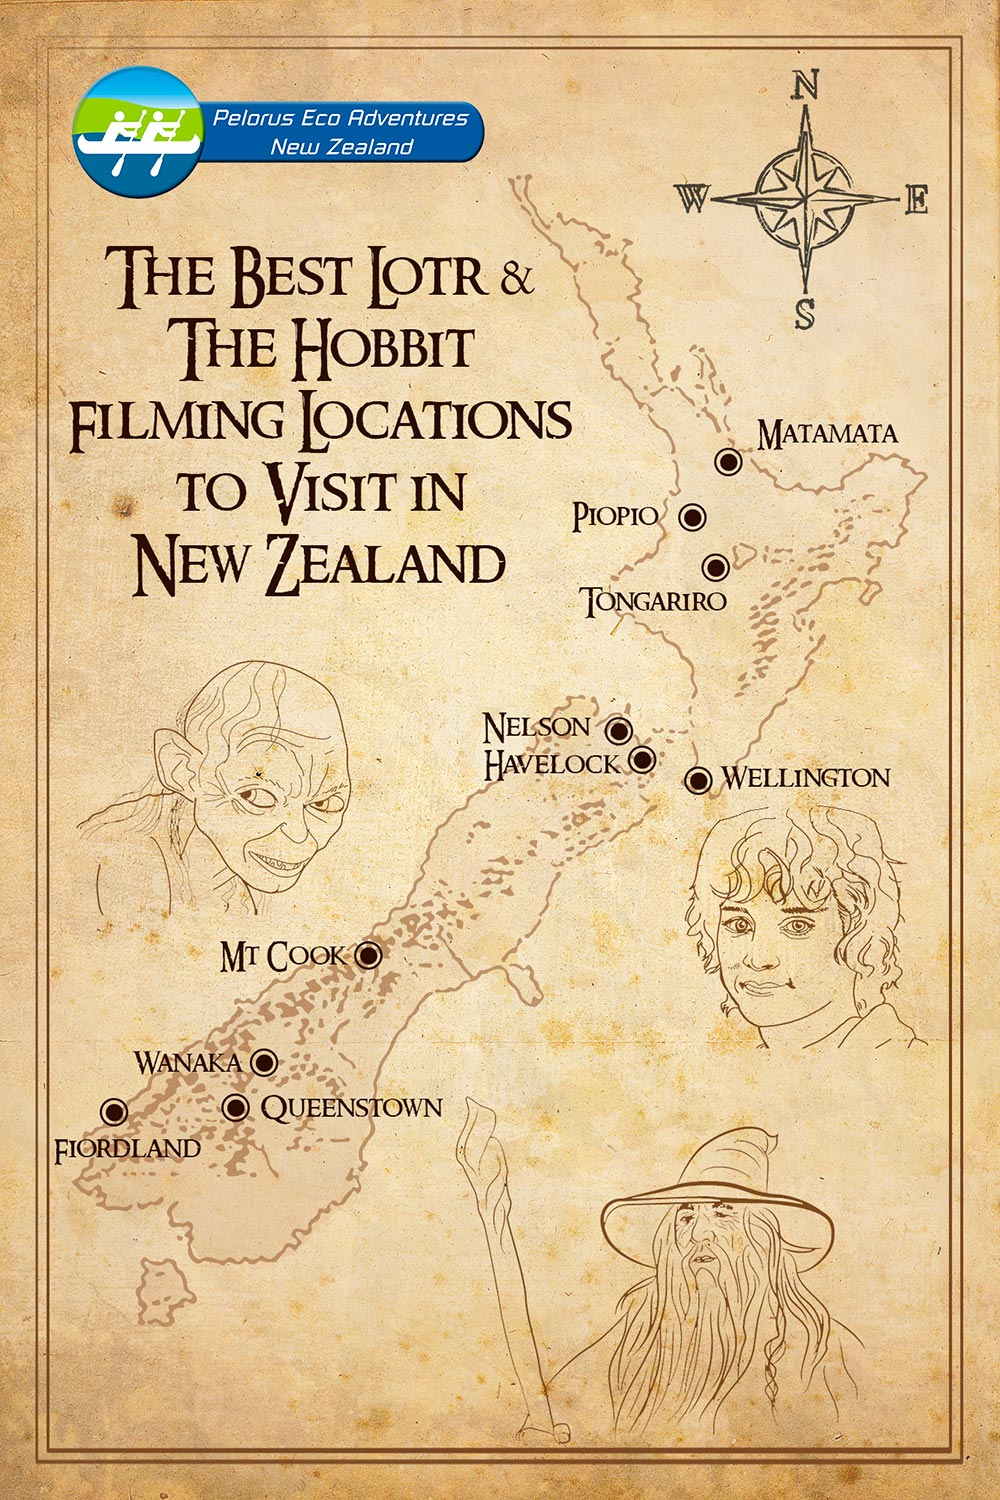 Lord Of The Rings The Hobbit Filming Locations Kayak New Zealand